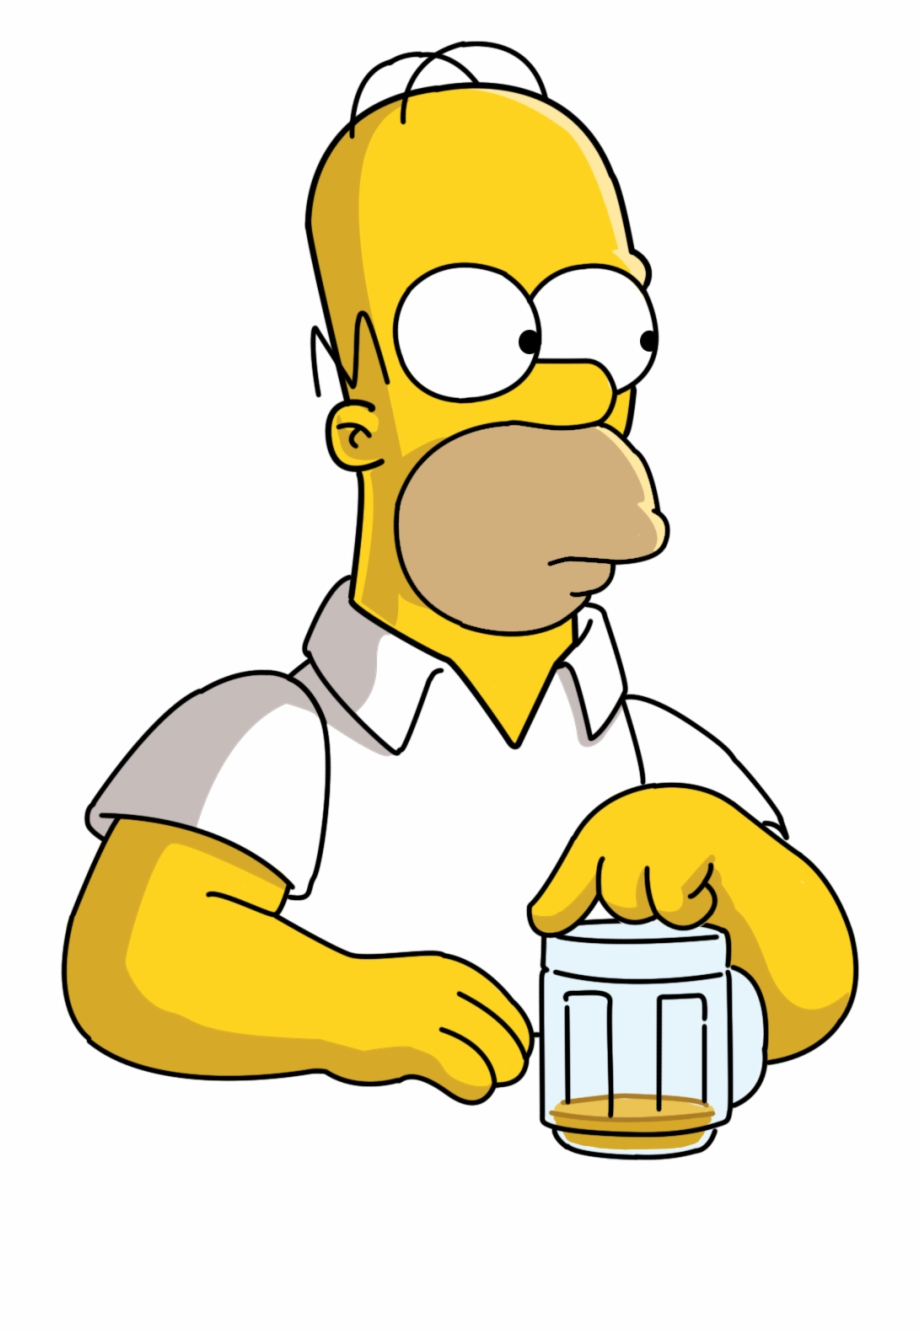 Homer Simpson, Transparent Png Download For Free #44890.